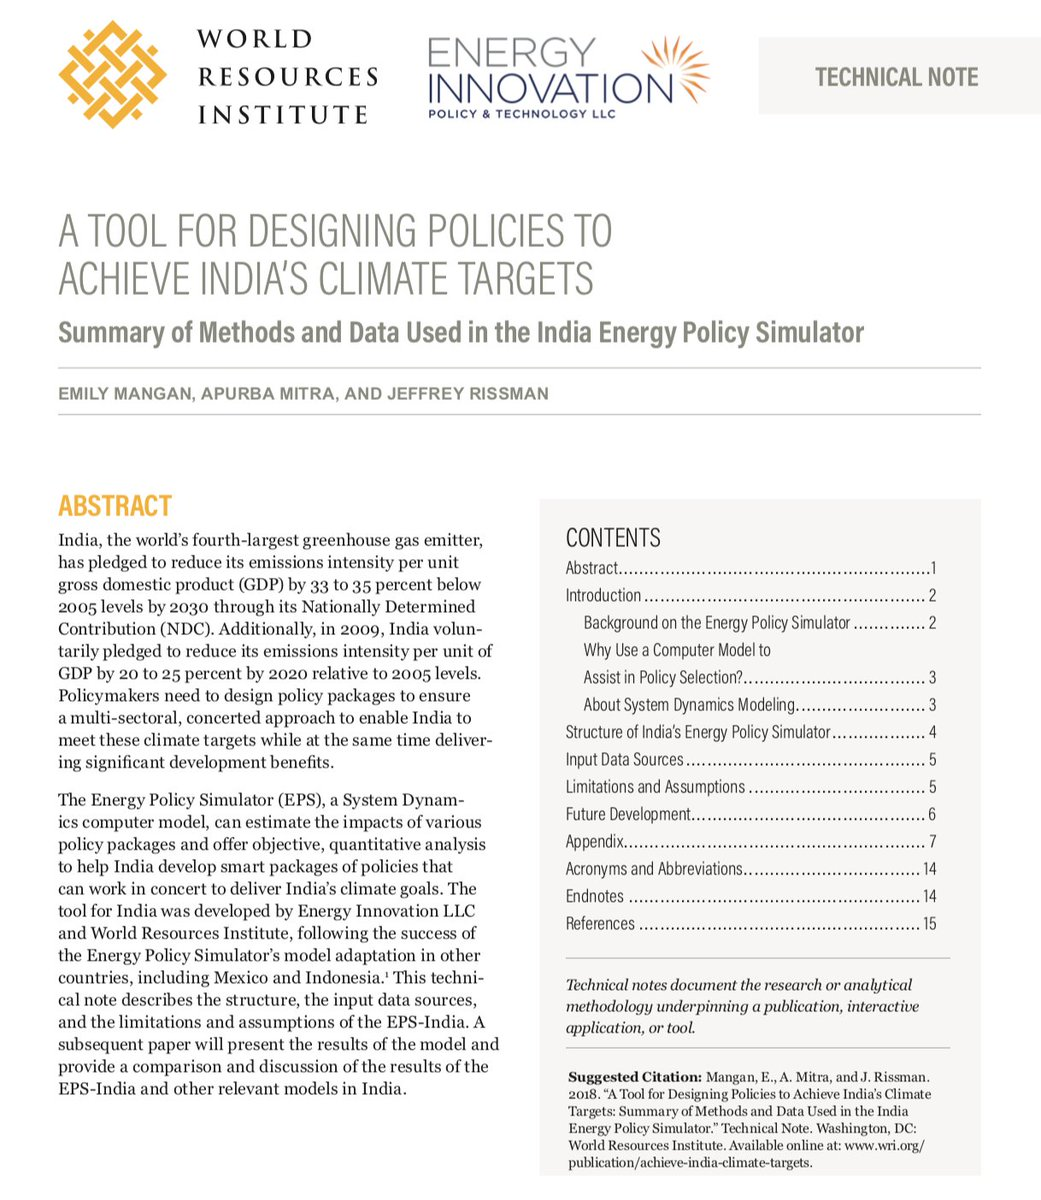 Wri India On Twitter India S Energy Policy Simulator Can Estimate The Impacts Of Various Policy Packages And Offer Objective Quantitative Analysis To Design Smart Policies For Achieving The Country S Climate Targets Read